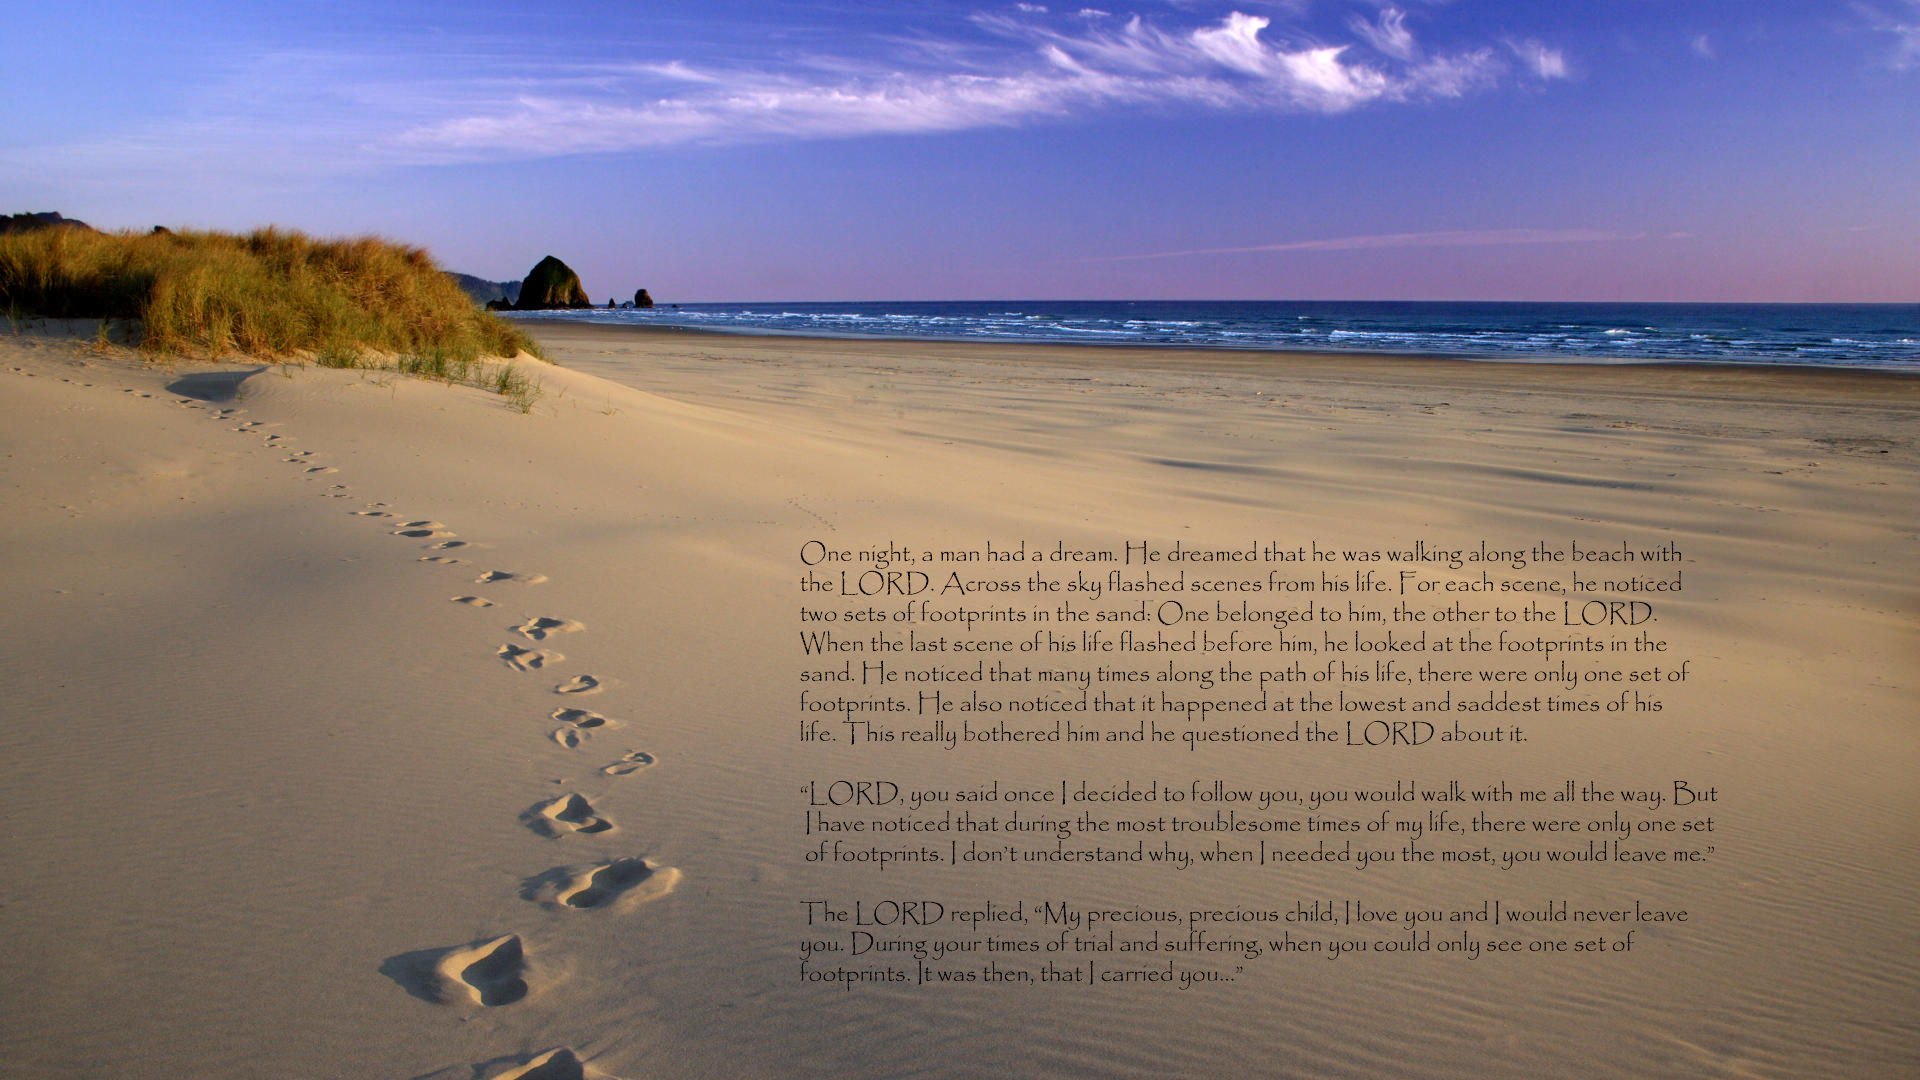 Footprints In The Sand Hd Wallpaper   Background Image   1920X1080 - Footprints In The Sand Printable Free